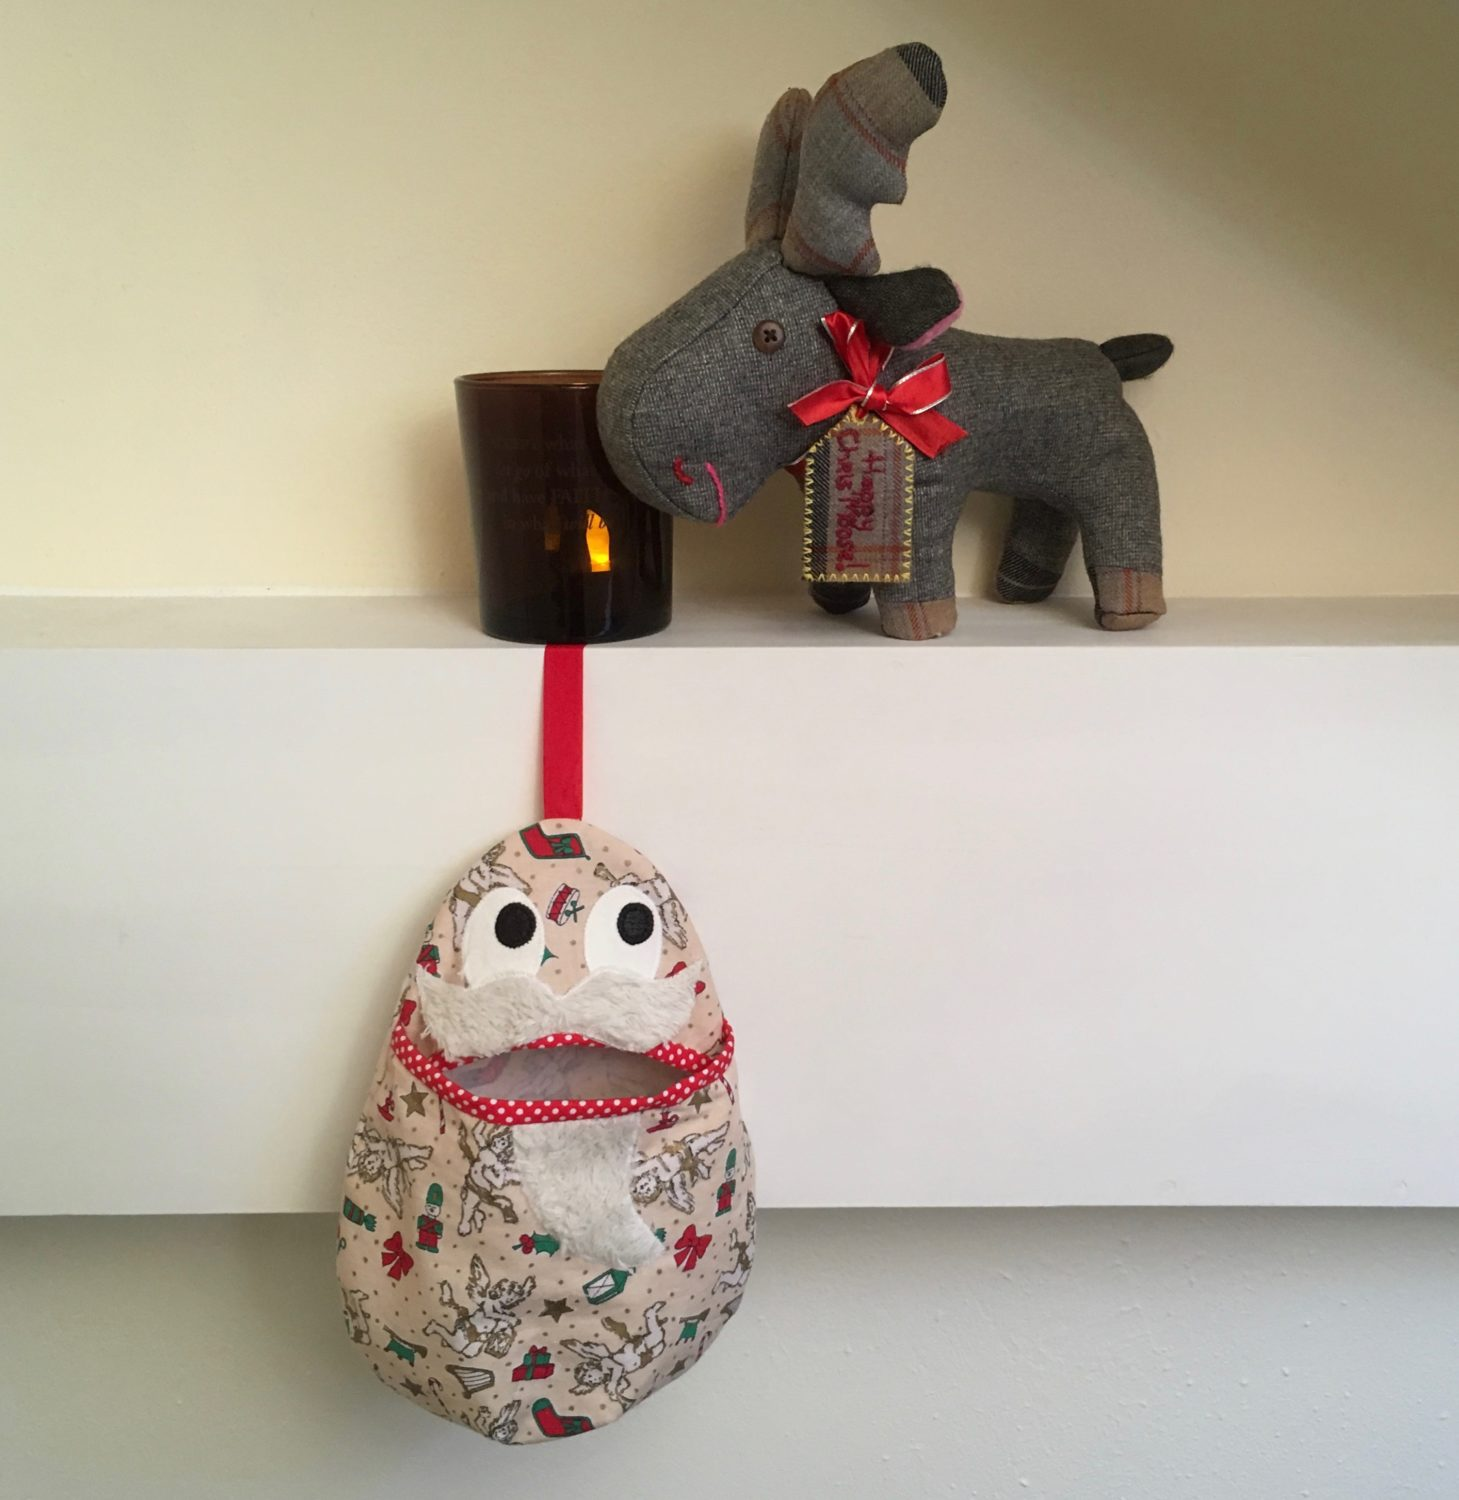 EiWeih Nikolaus for small gifts